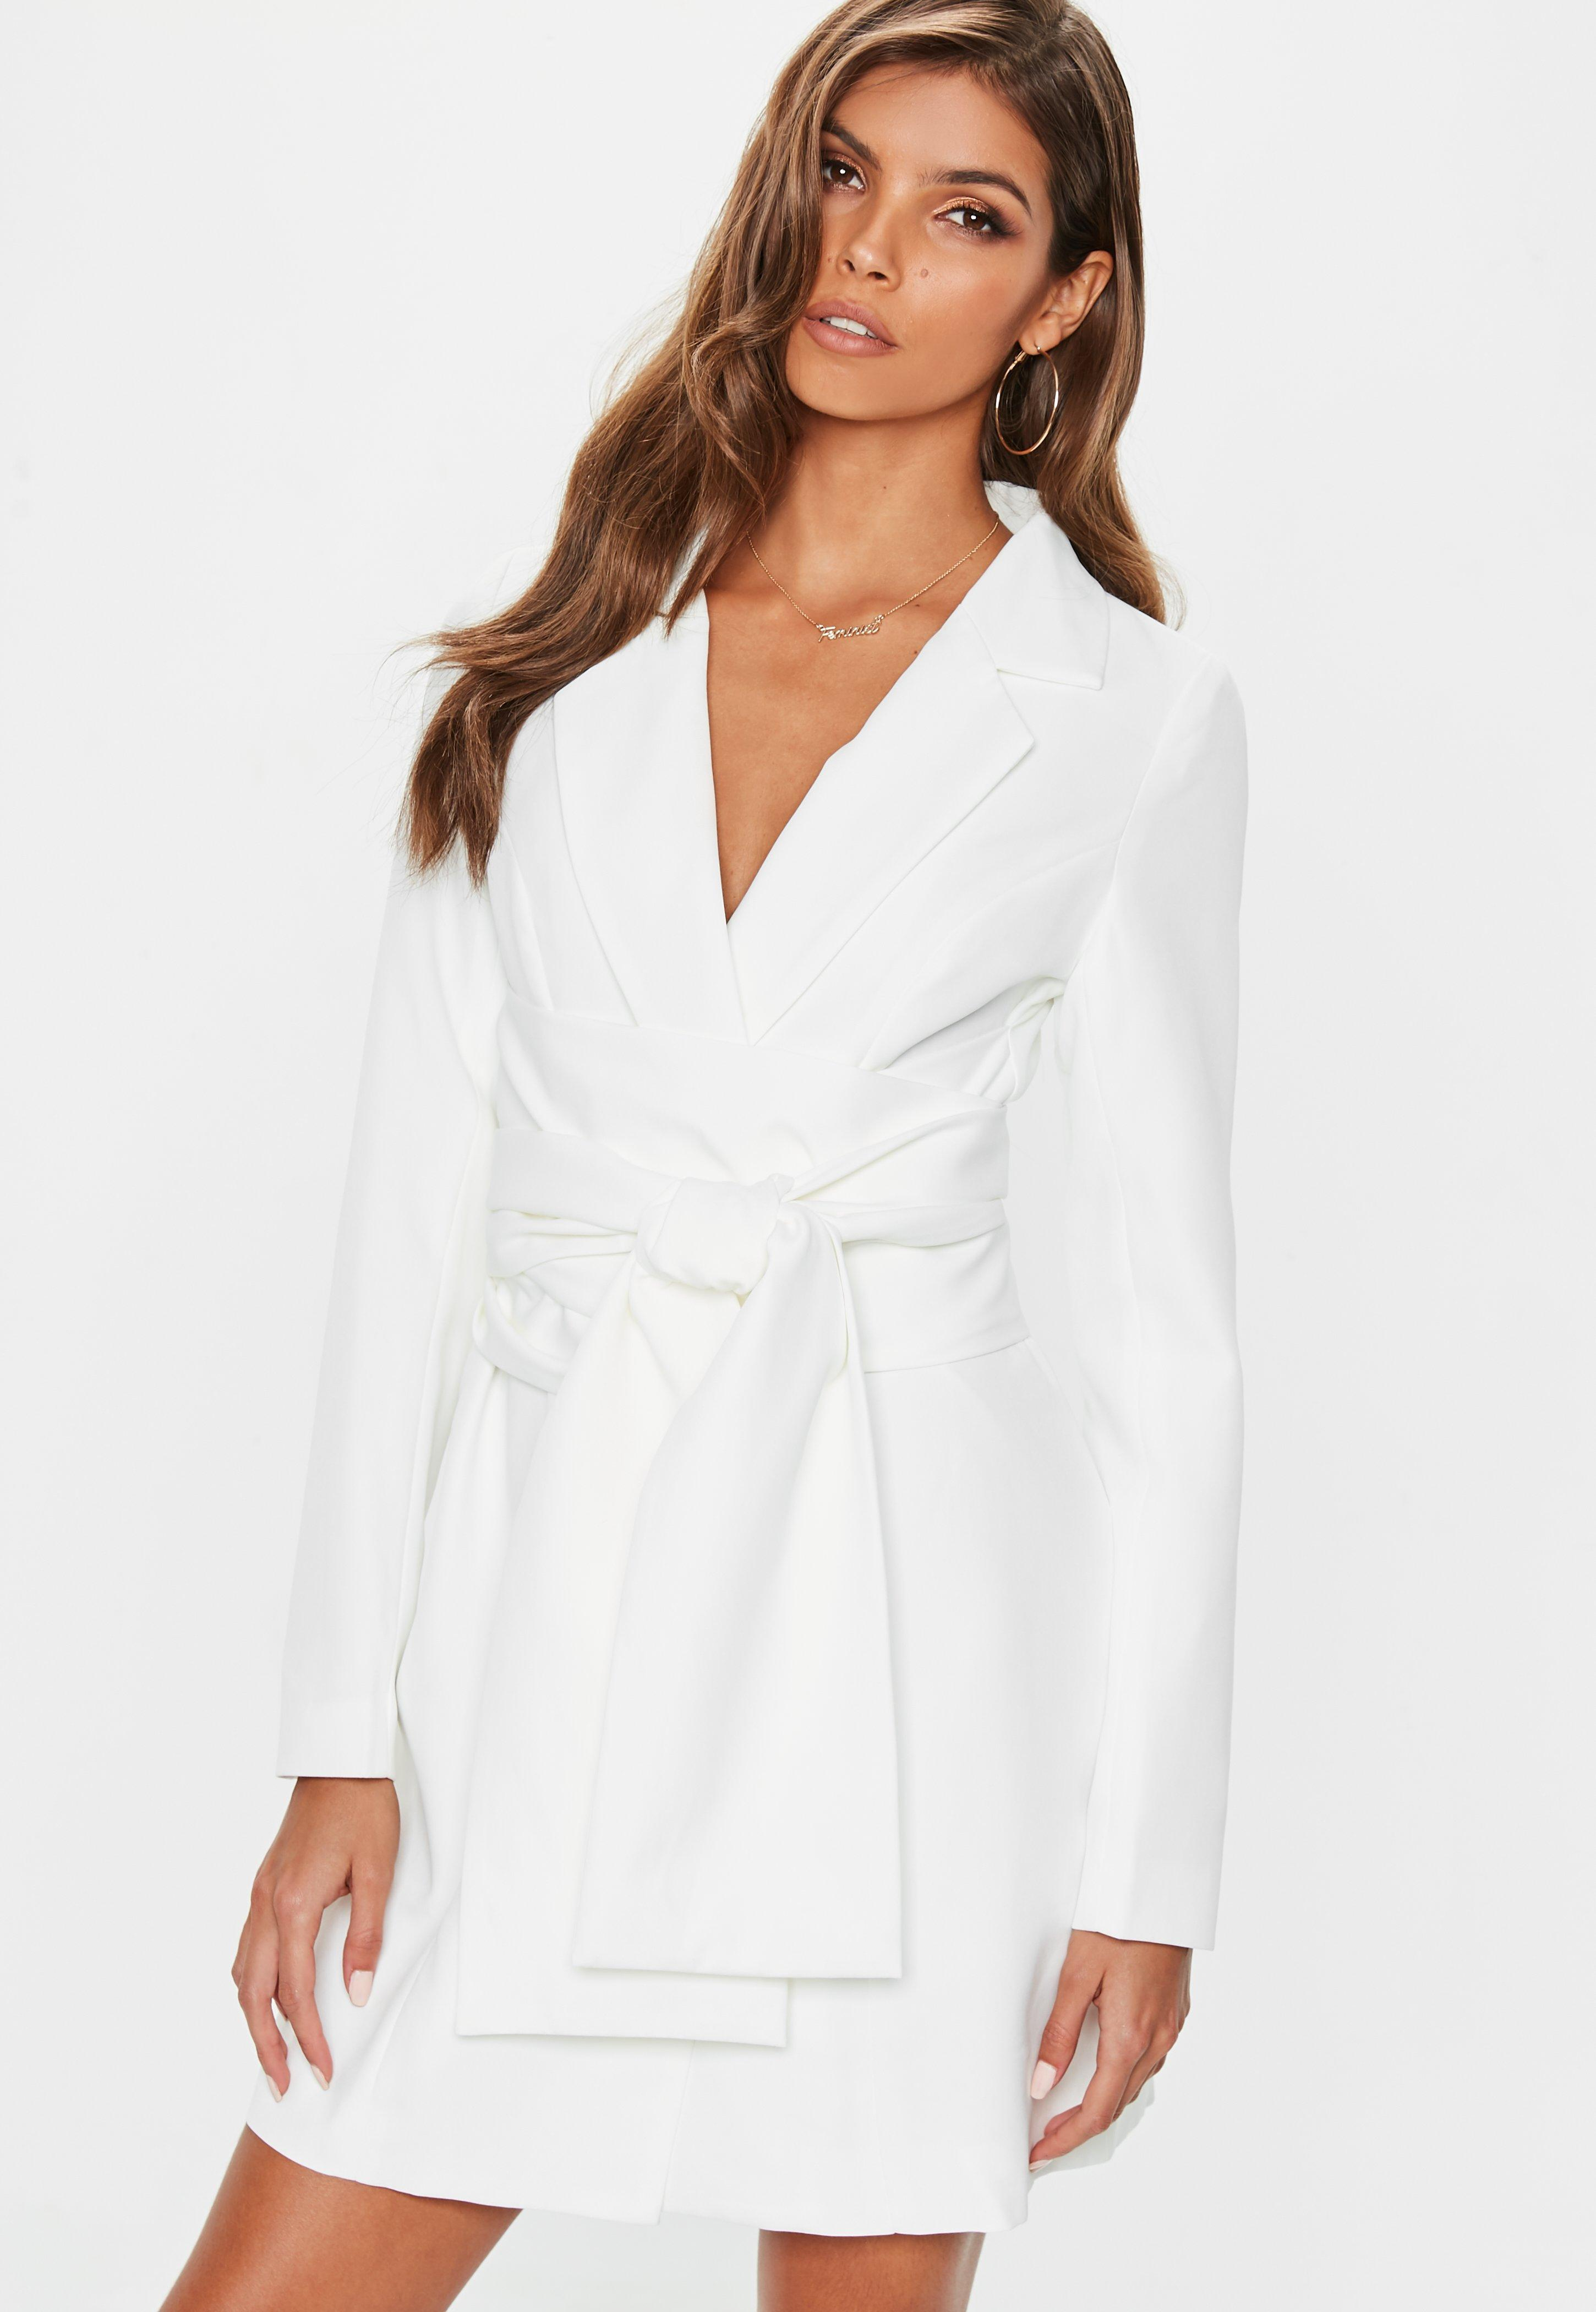 fbd42c2c0a26 Missguided Cream Extreme Wrap Belted Blazer Dress in White - Lyst